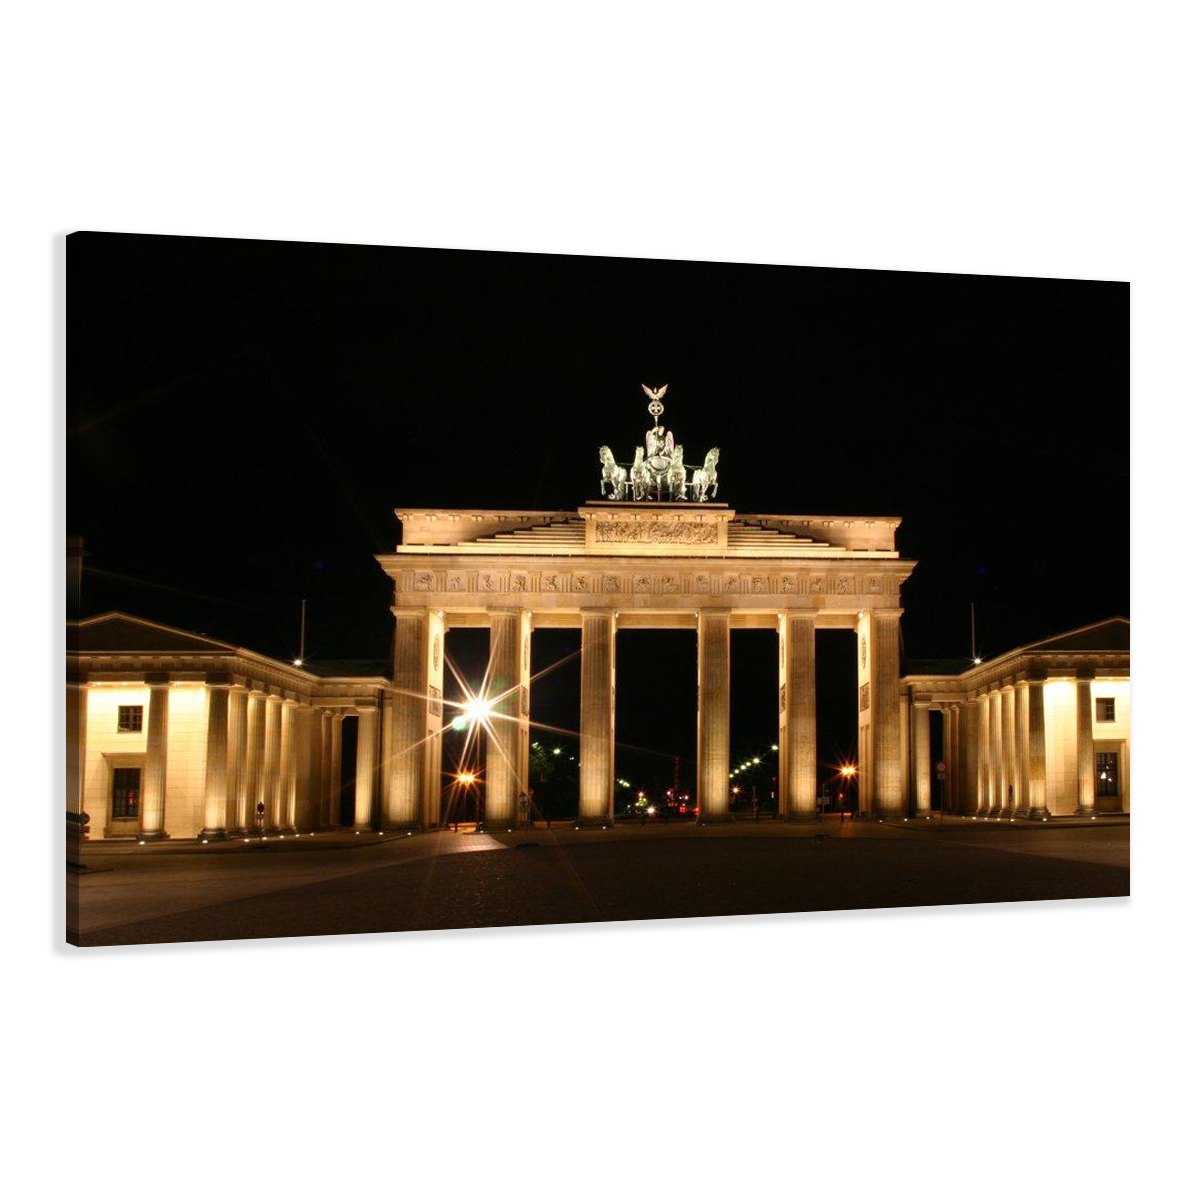 bild marken bilder leinwand auf rahmen berlin 120x80cm xxl 5018 ebay. Black Bedroom Furniture Sets. Home Design Ideas